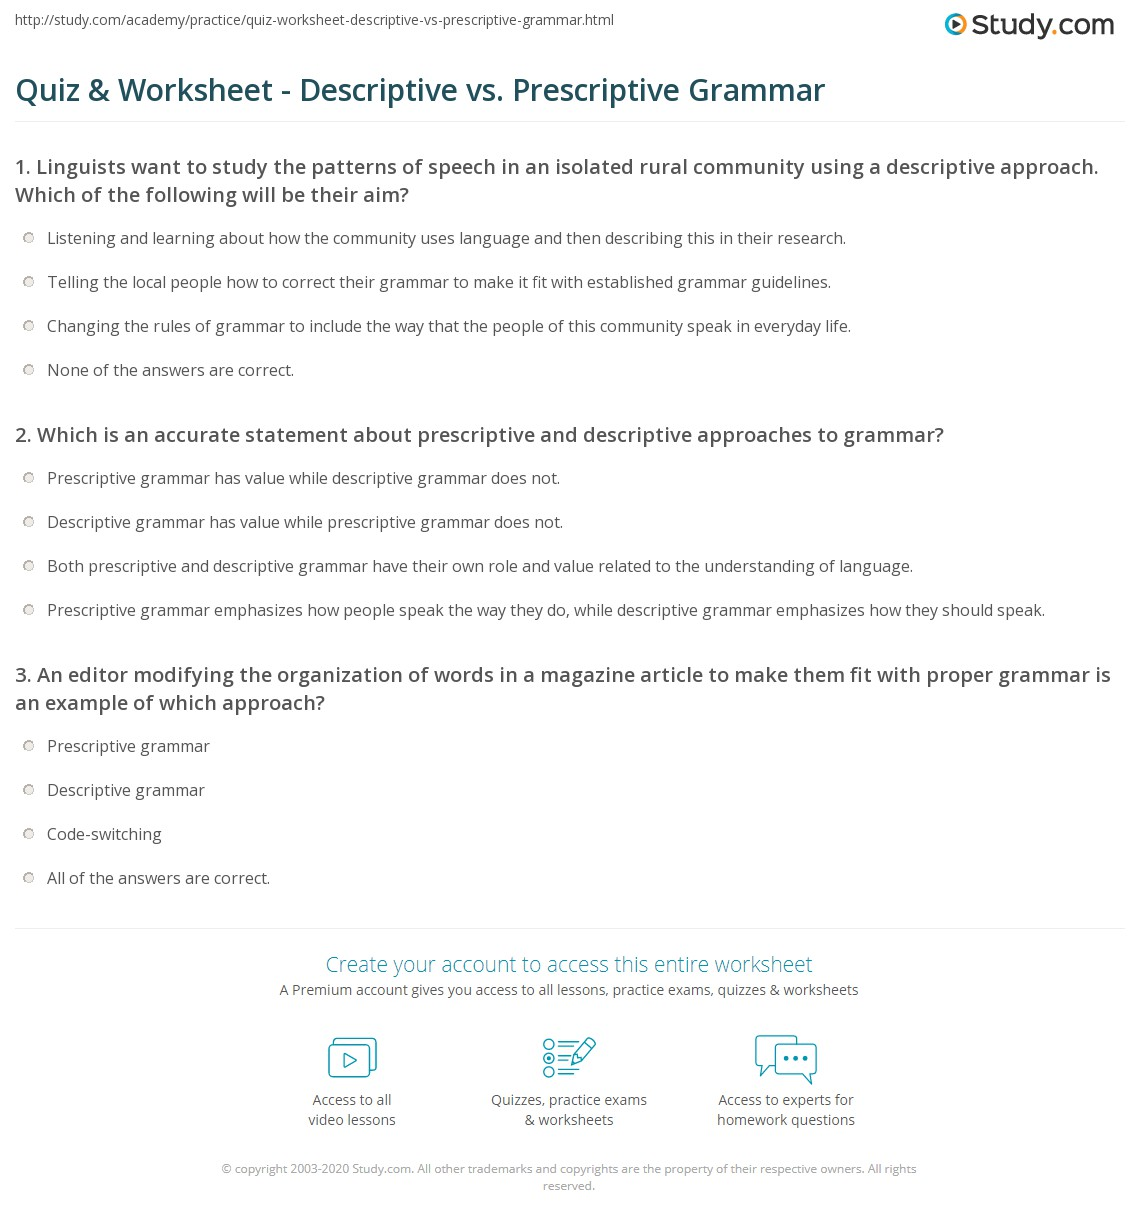 Worksheets Grammar Worksheets College quiz worksheet descriptive vs prescriptive grammar study com conventions of worksheet